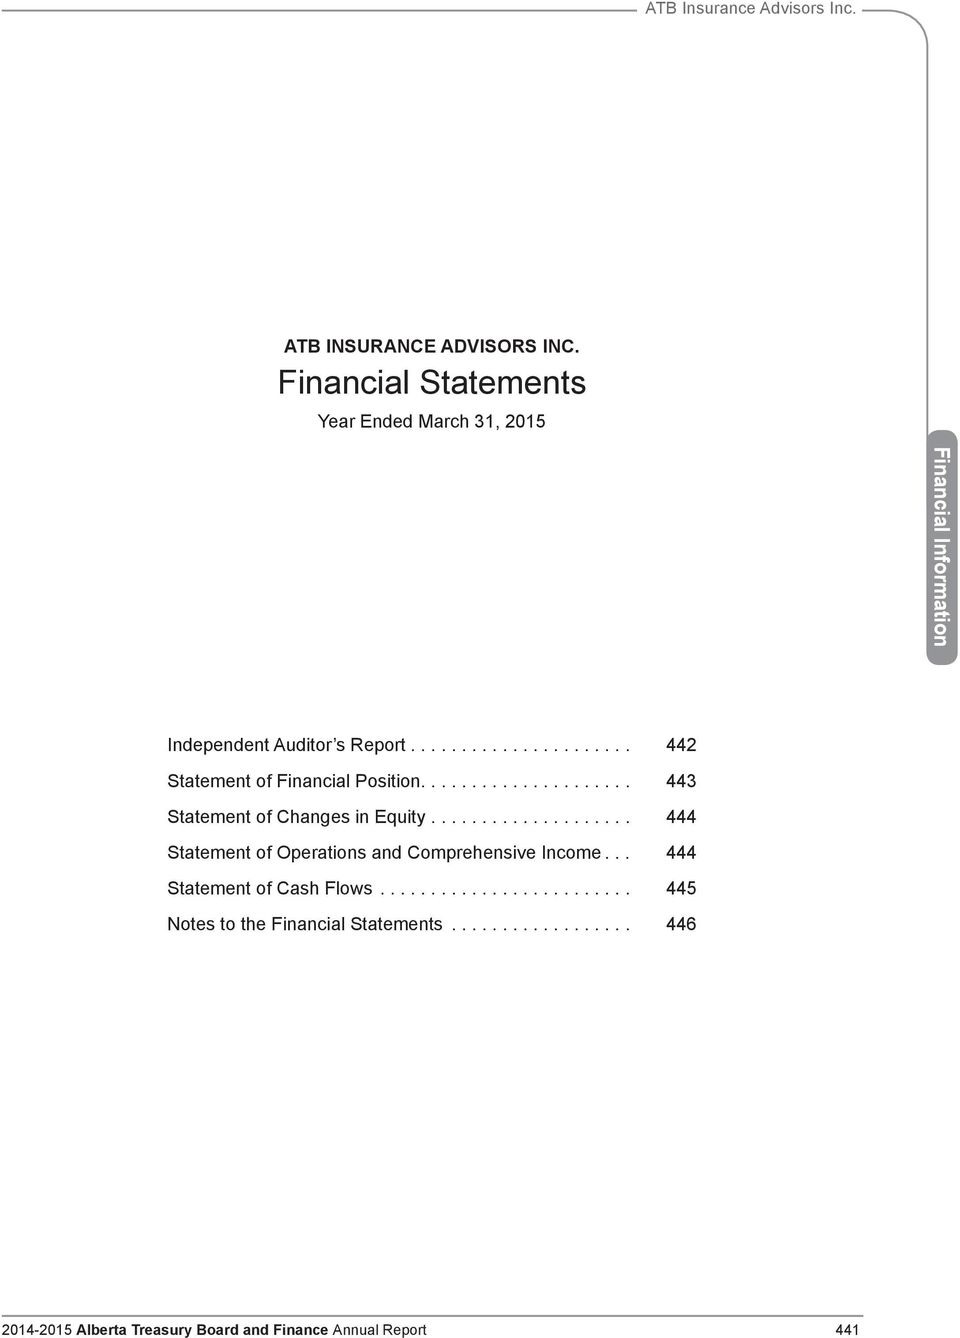 ... 442 Statement of Financial Position..................... 443 Statement of Changes in Equity.